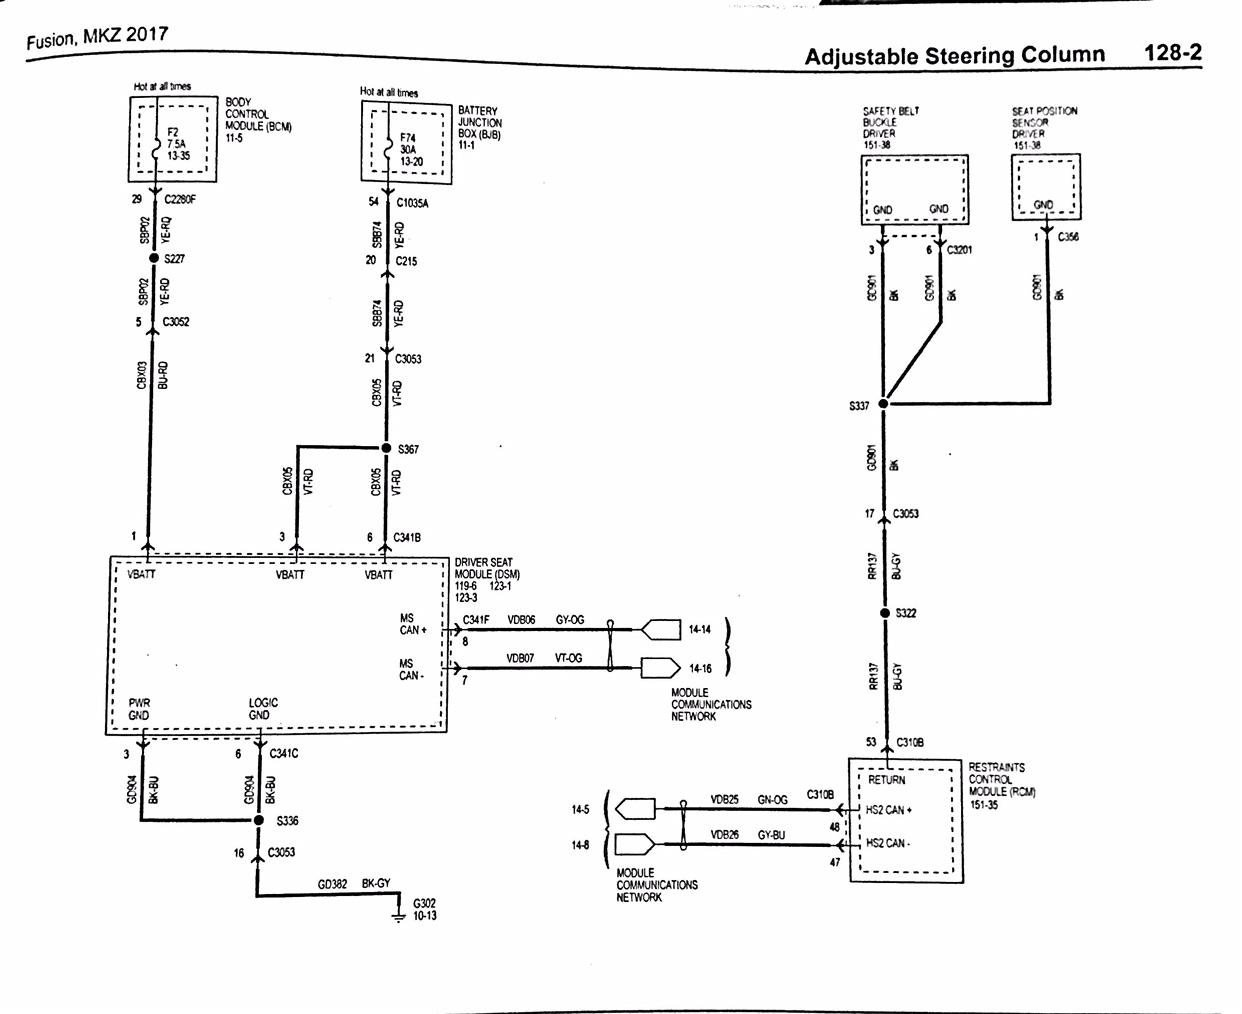 fusion 2017 driver seat wiring diagram2GFusions